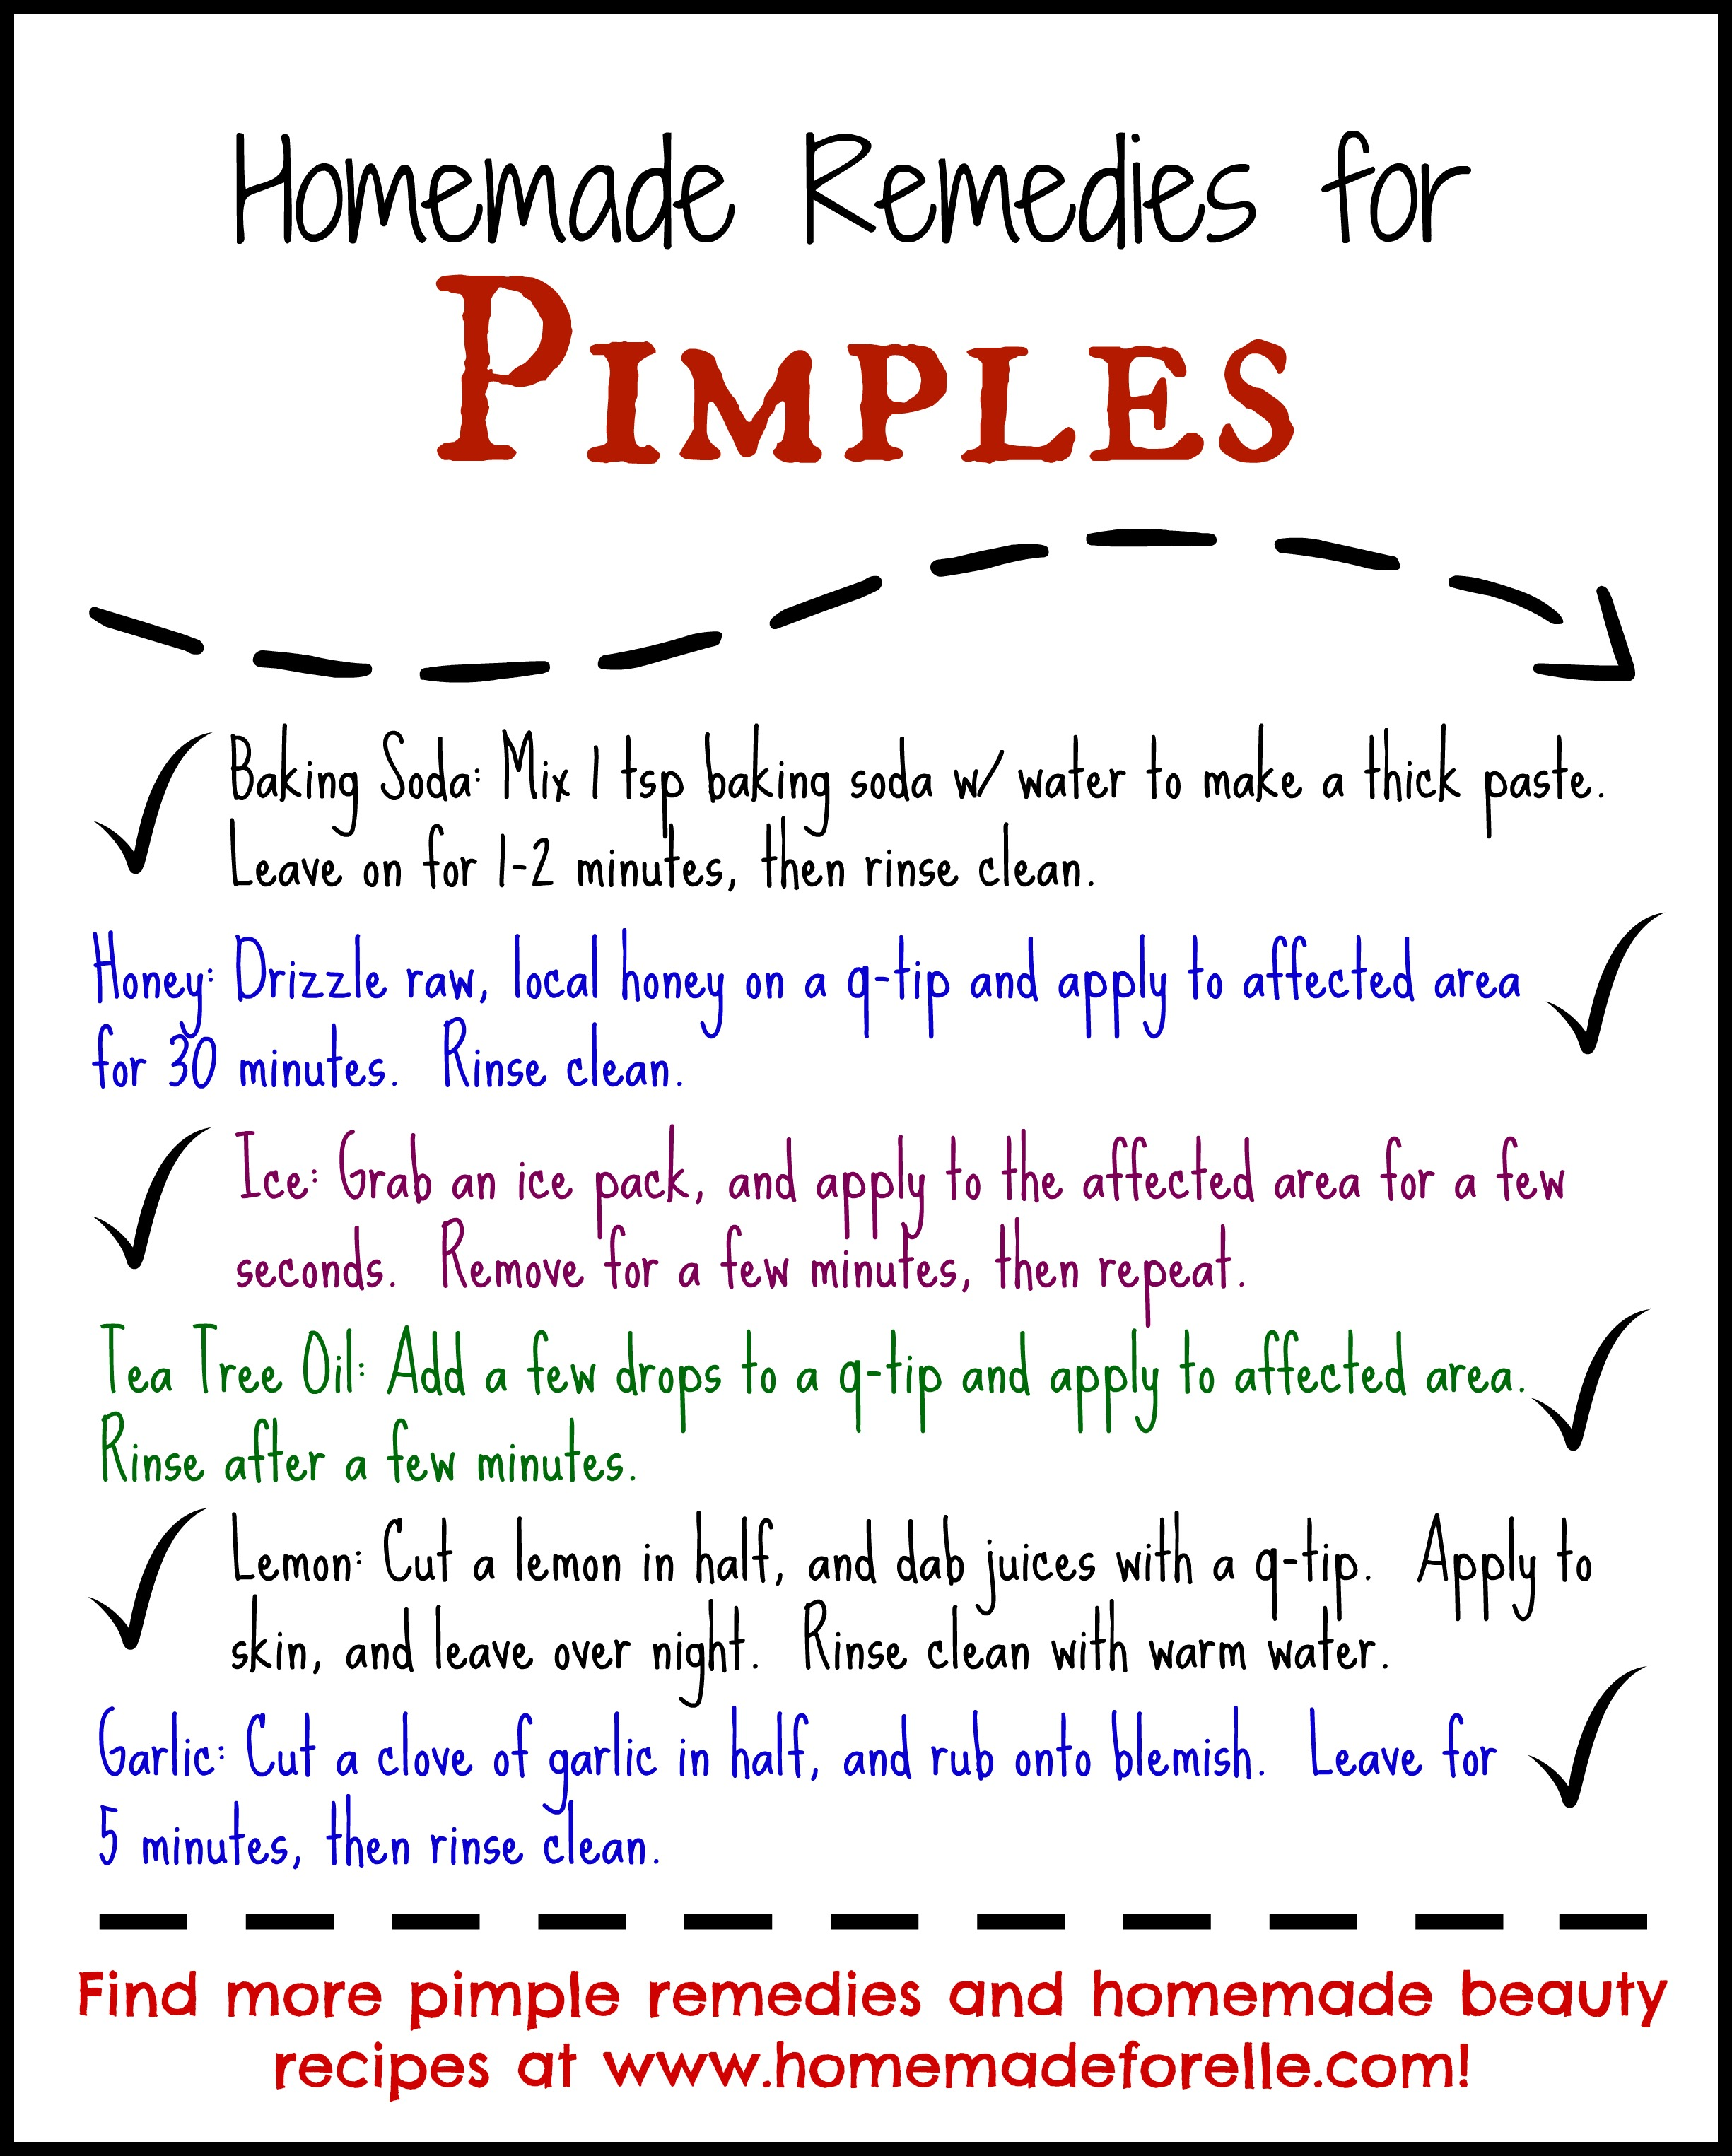 Homemade Beauty Tips for Pimples  Homemade for Elle